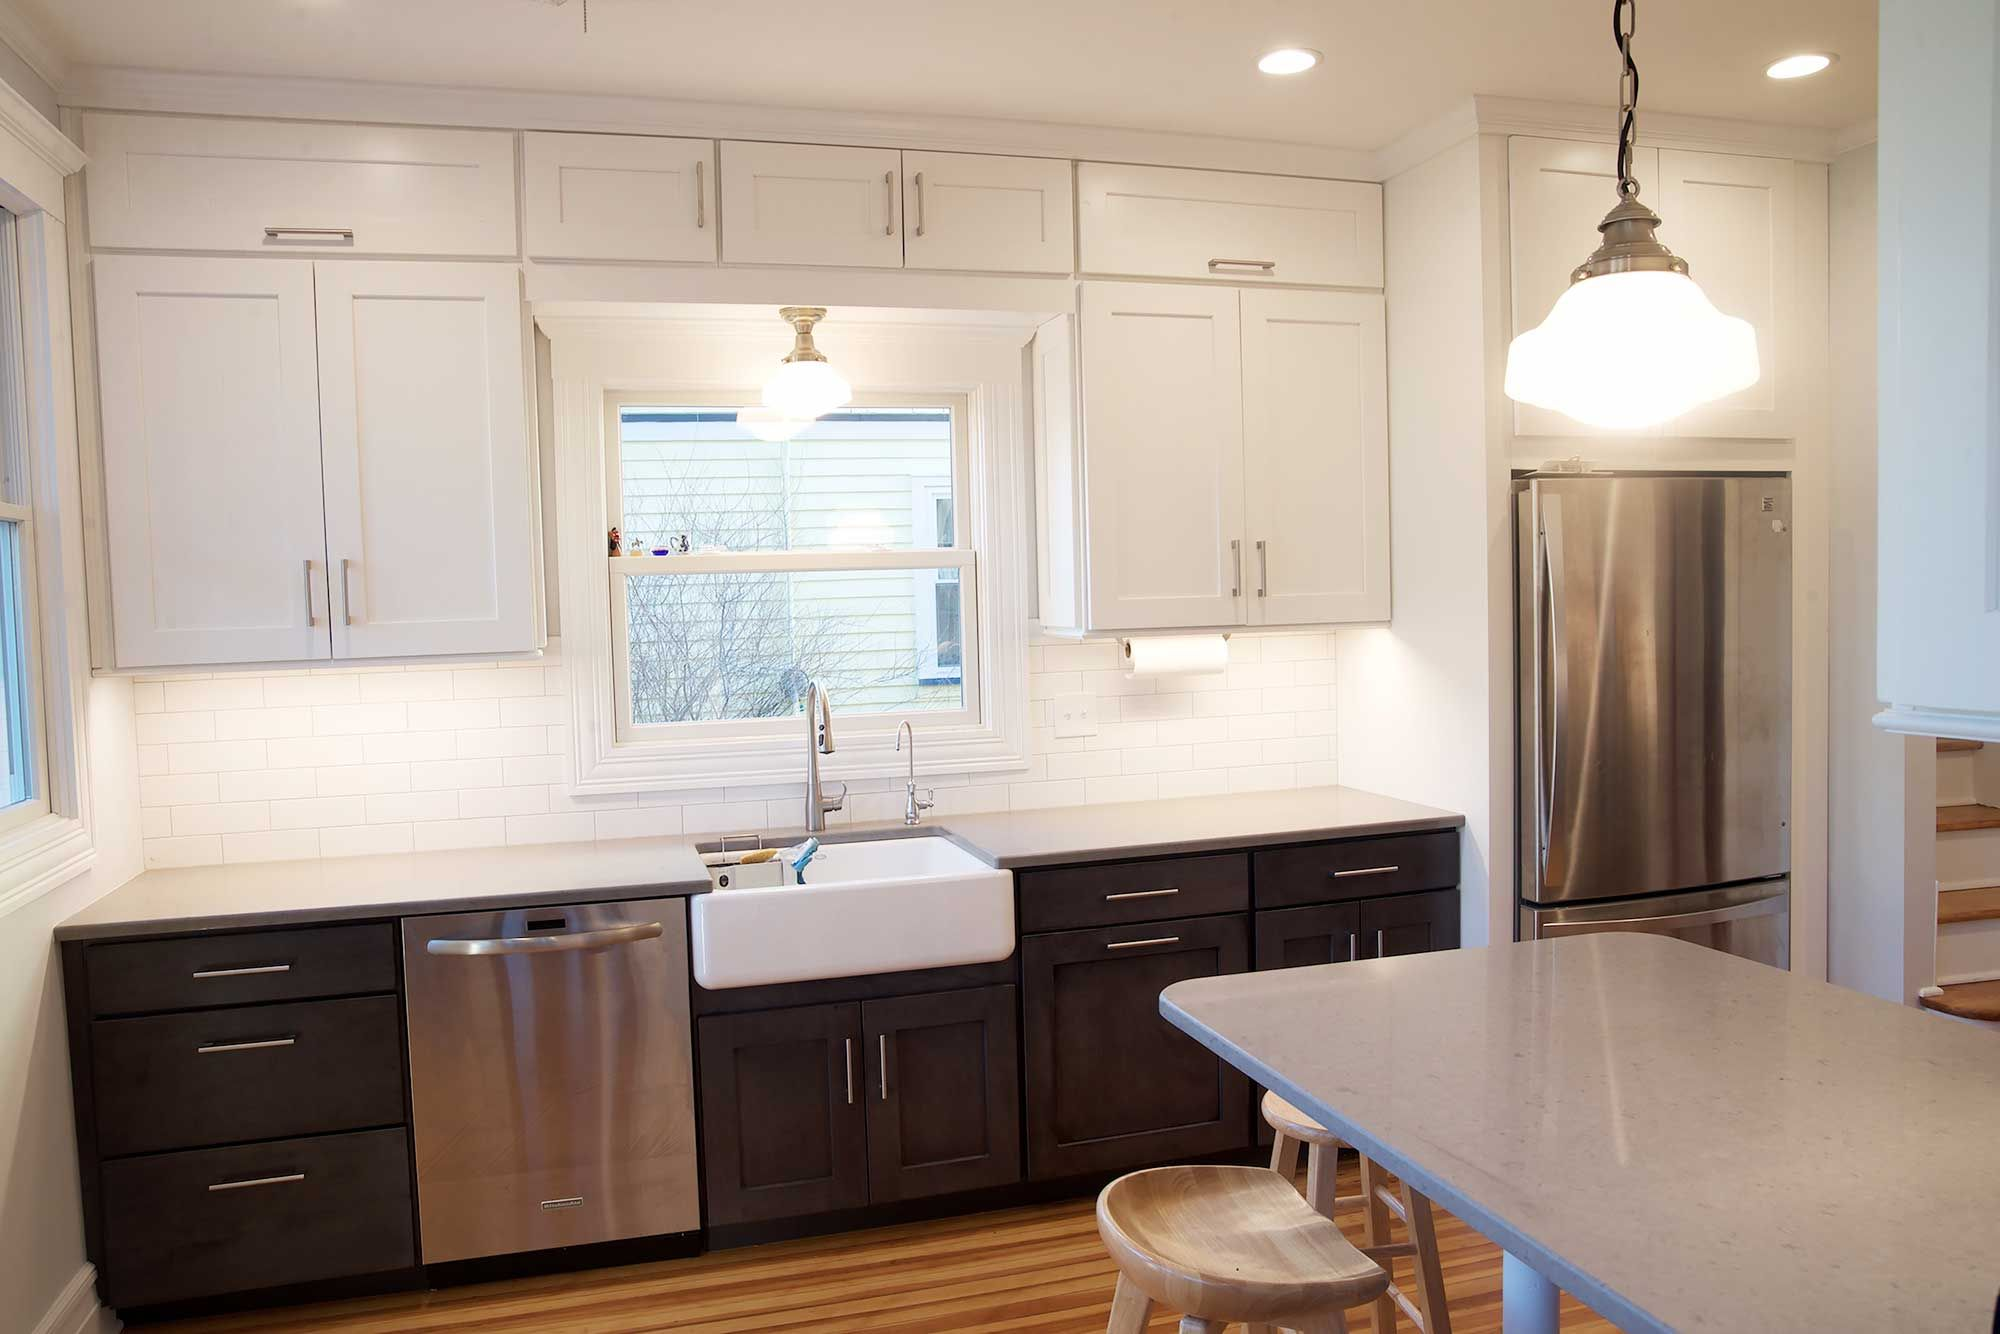 Pin By Ldveezy On Kitchen With Images Classic Kitchens Kitchen Upper Cabinets